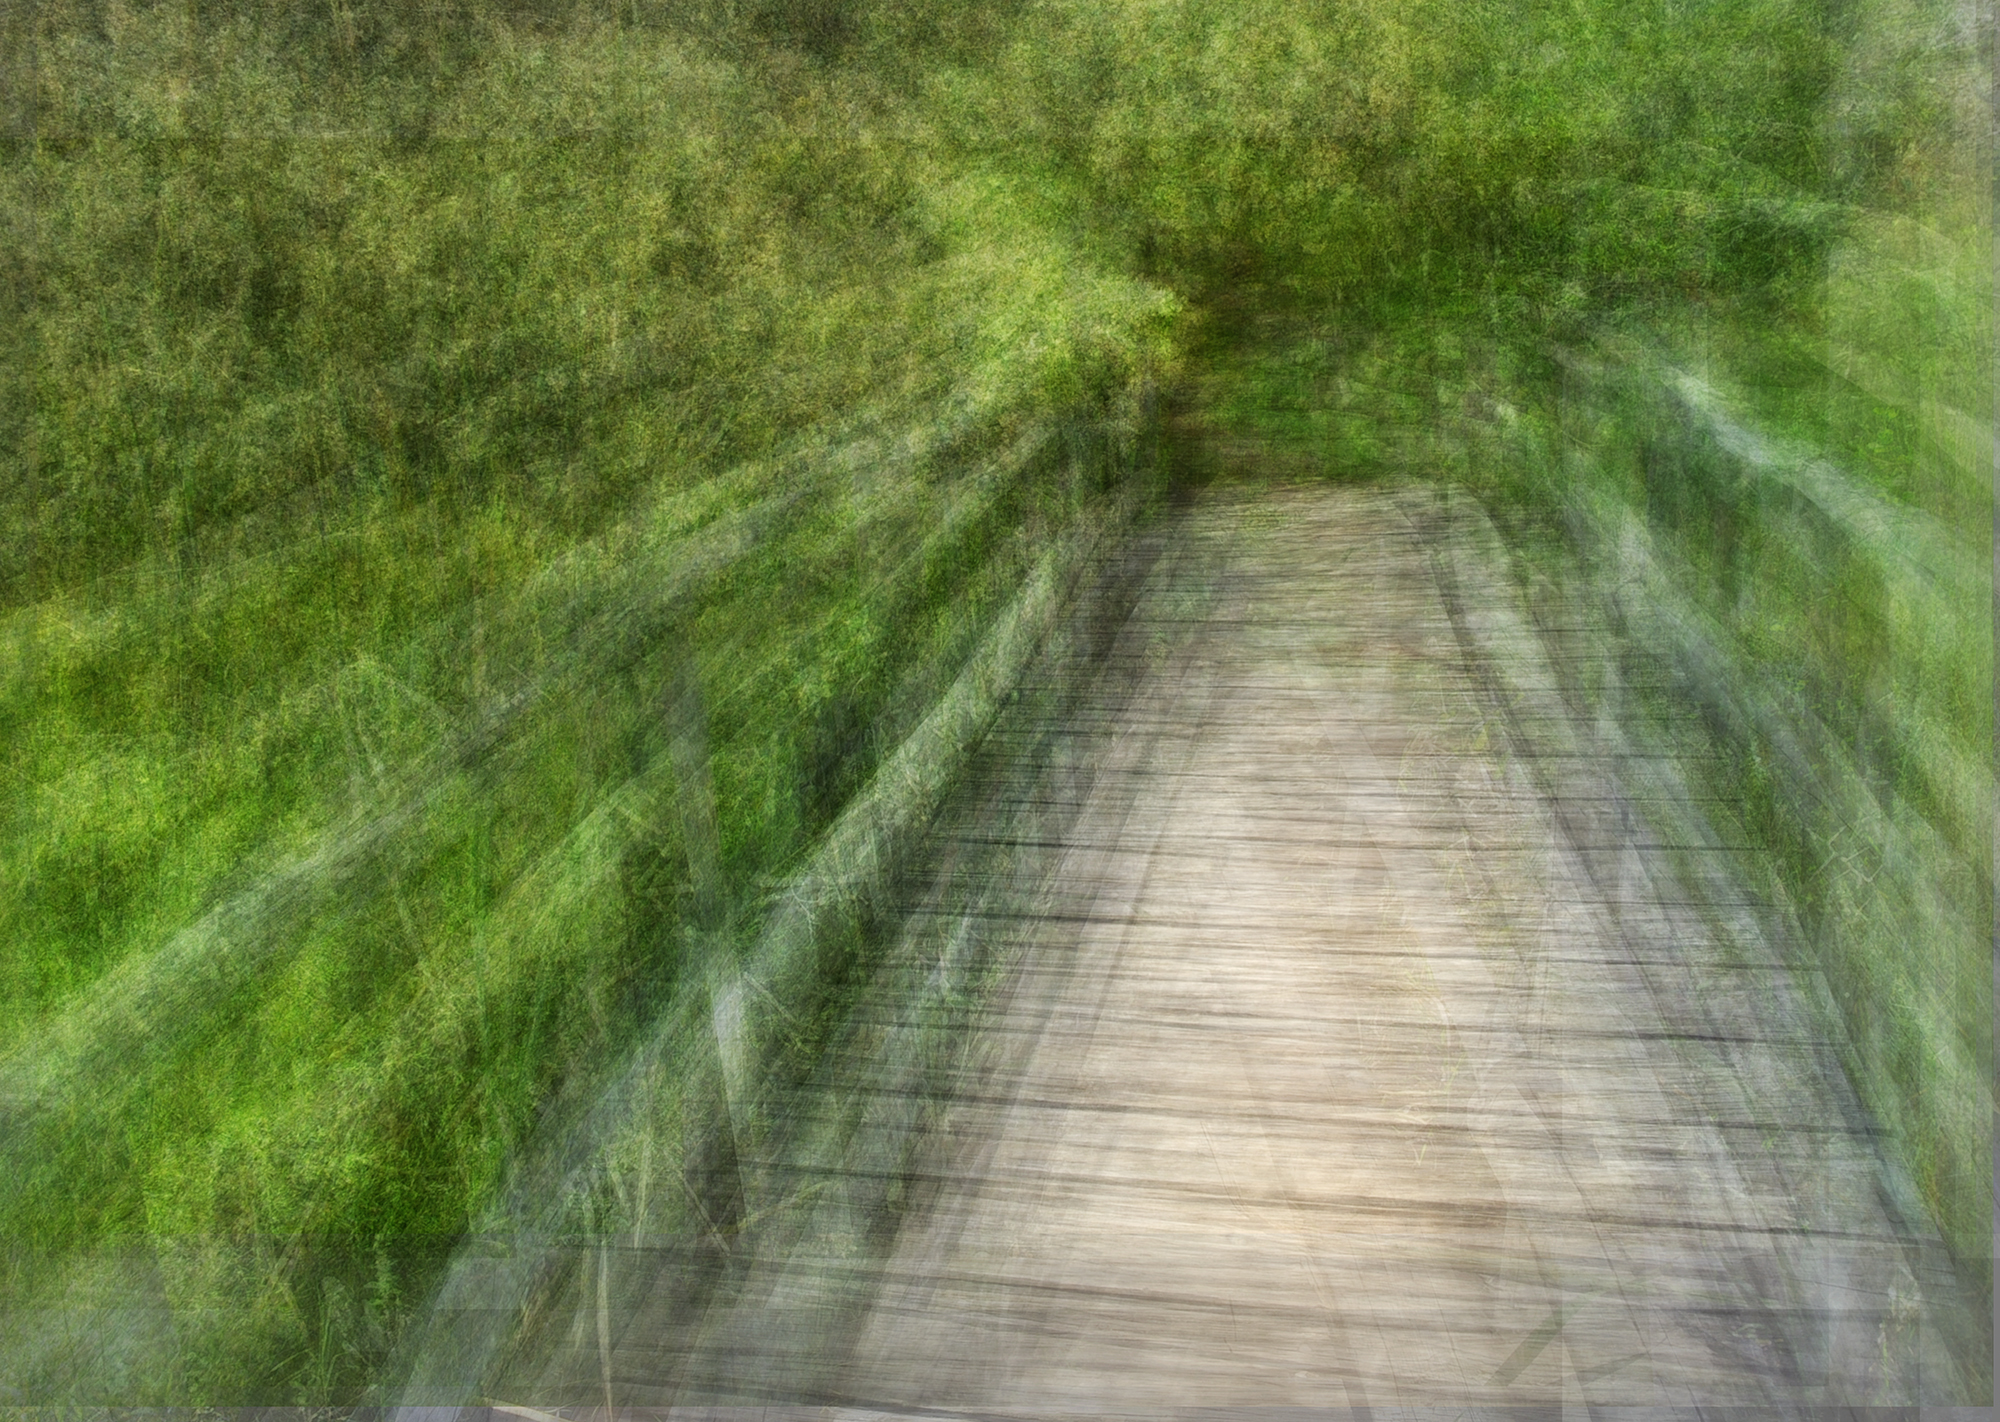 Crossing a bridge Glencairn vlei wetlands – André S Clements